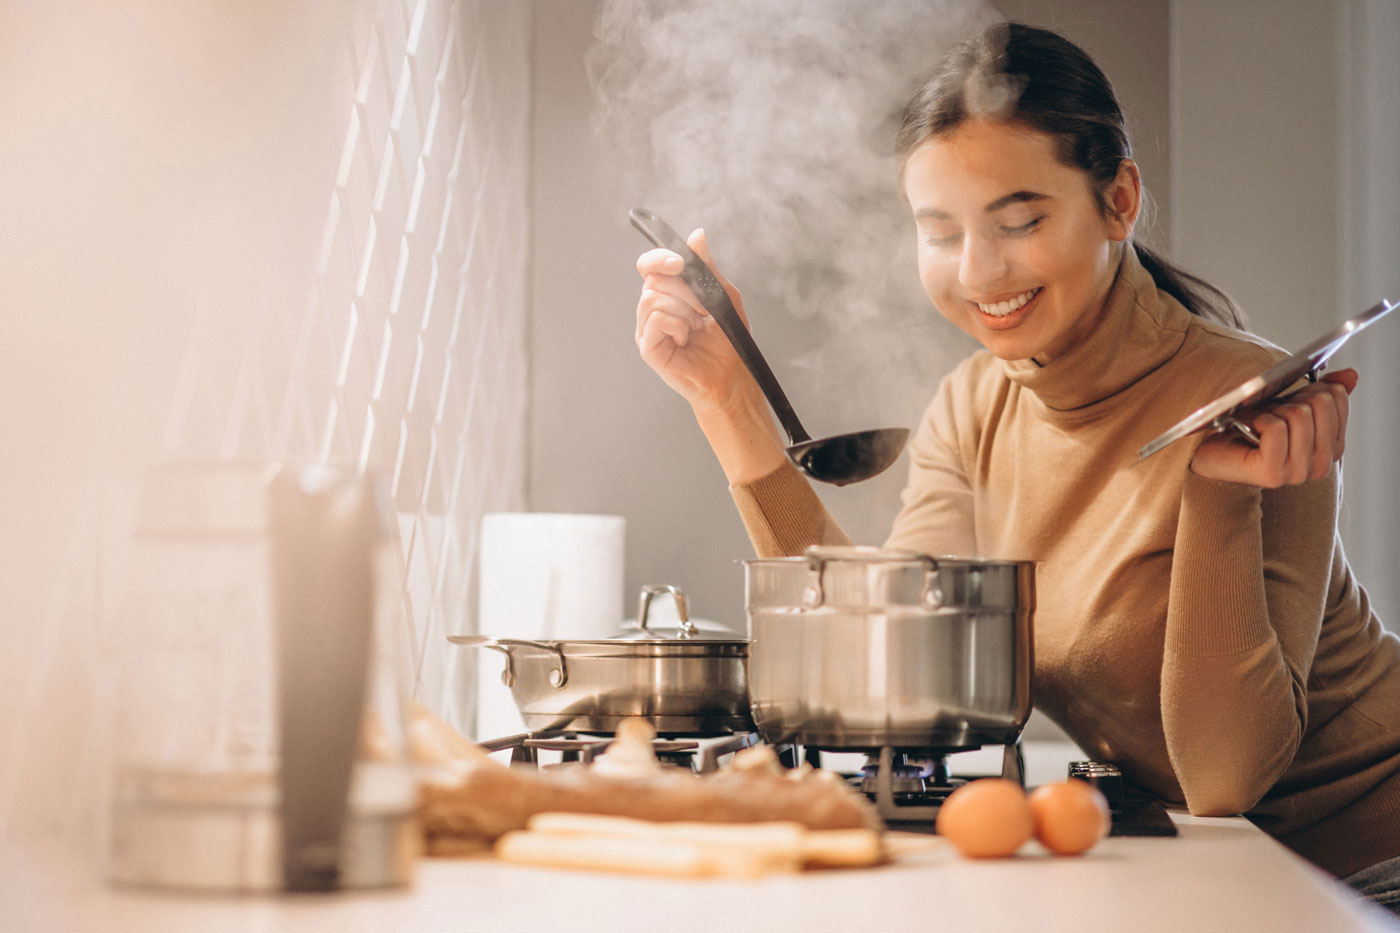 woman cooking in the kitchen while smiling with steam coming out of the pot